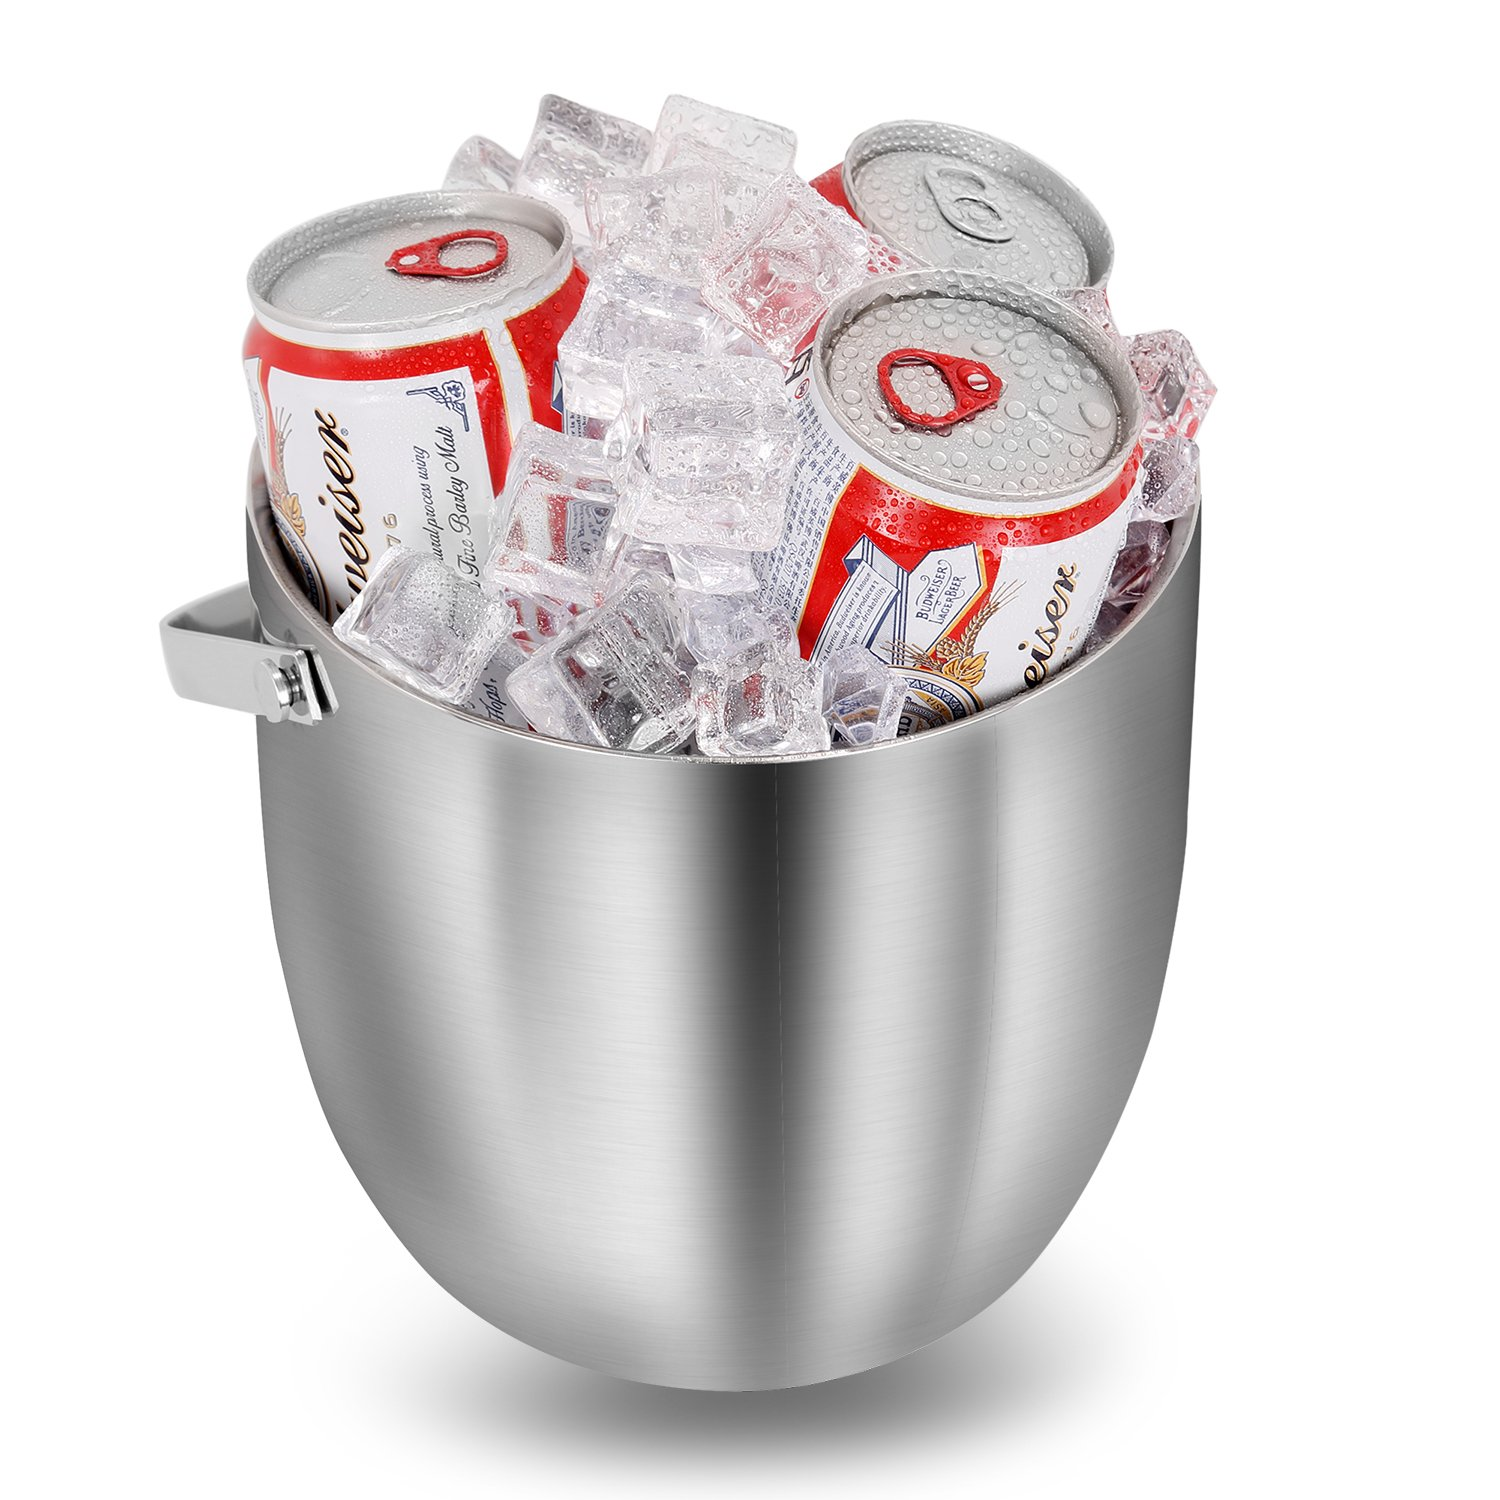 Fortune Candy Double Walled Ice Bucket,Beer Bucket for Parties,Stainless Steel Ice Tongs with Lid 2.8L/2.7 Quart (Silver) by Fortune Candy (Image #6)